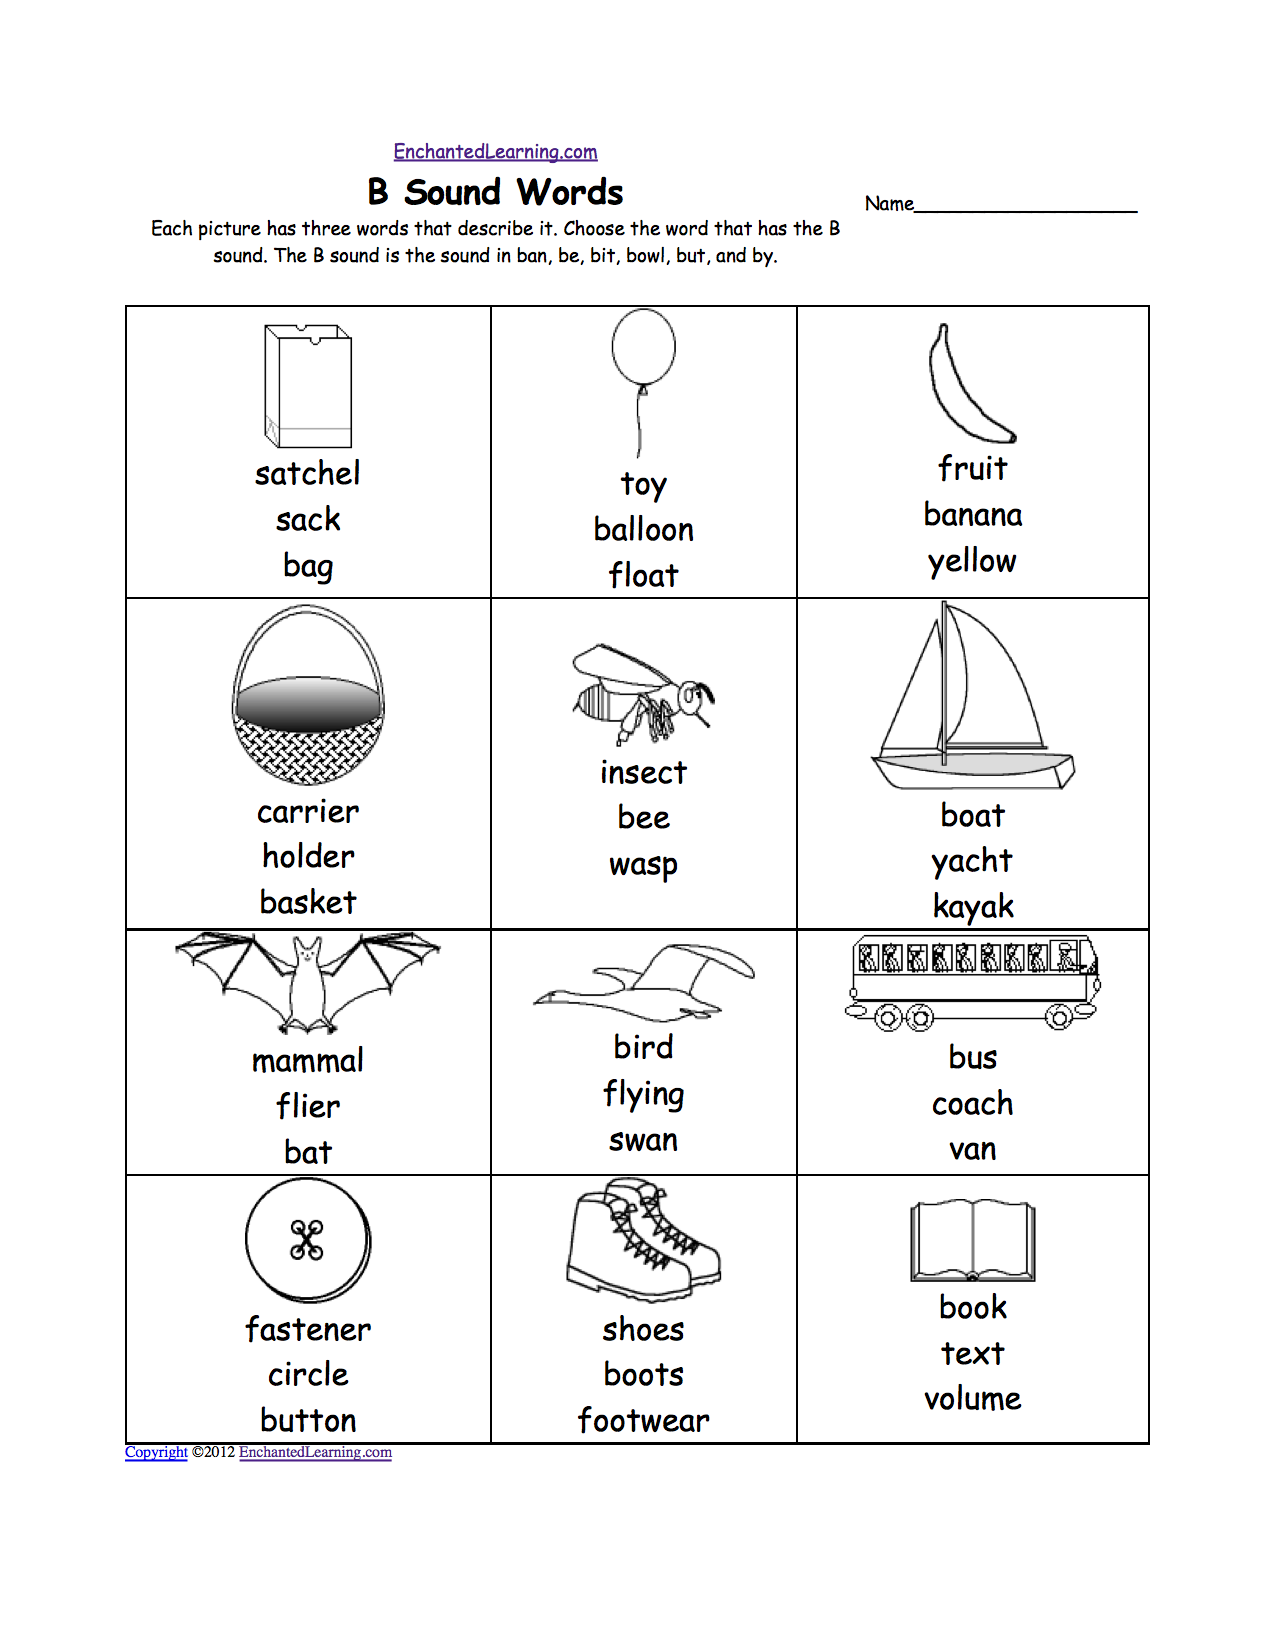 Weirdmailus  Splendid Phonics Worksheets Multiple Choice Worksheets To Print  With Exquisite Quotbquot Sound Phonics Worksheet Multiple Choice Each Picture Has Three Words That Describe It Choose The Word That Has A Quotbquot Sound The Quotbquot Sound Is The Sound  With Divine Solubility Curve Practice Problems Worksheet  Answers Also Dilations Worksheet Pdf In Addition Biome Worksheet And Timeline Worksheets As Well As Goal Setting Worksheets Additionally Area Worksheets Rd Grade From Enchantedlearningcom With Weirdmailus  Exquisite Phonics Worksheets Multiple Choice Worksheets To Print  With Divine Quotbquot Sound Phonics Worksheet Multiple Choice Each Picture Has Three Words That Describe It Choose The Word That Has A Quotbquot Sound The Quotbquot Sound Is The Sound  And Splendid Solubility Curve Practice Problems Worksheet  Answers Also Dilations Worksheet Pdf In Addition Biome Worksheet From Enchantedlearningcom